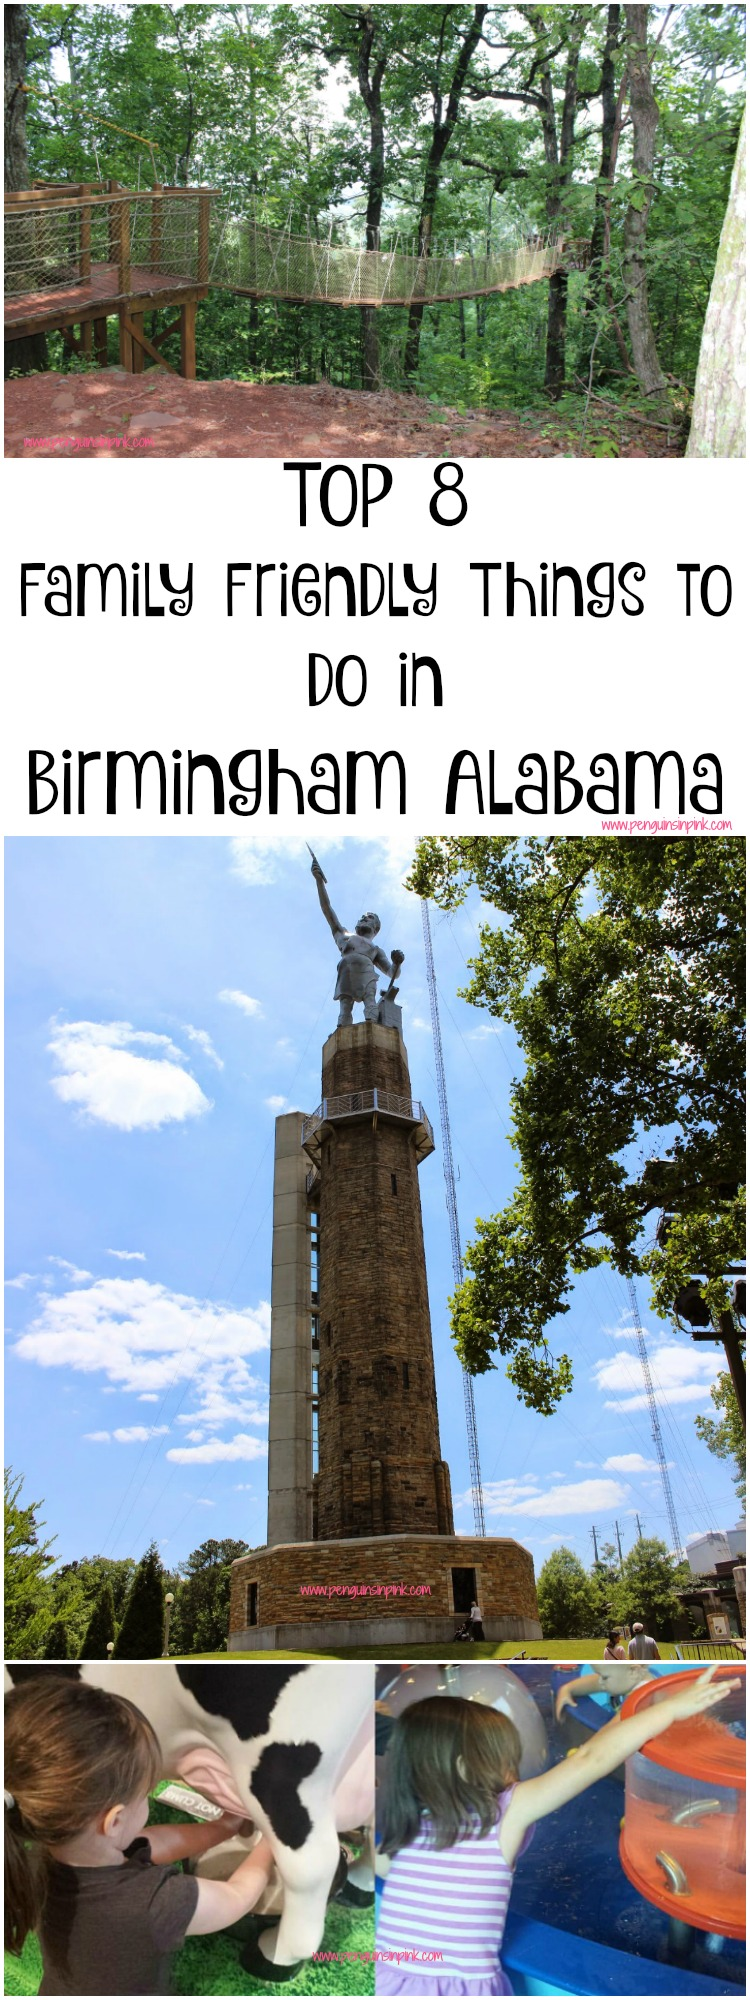 From hiking to the zoo and beautiful gardens to the art museum check out our Top 8 Family Friendly Things to Do in Birmingham Alabama. With 4 bonus places we want to visit the next time we are there.